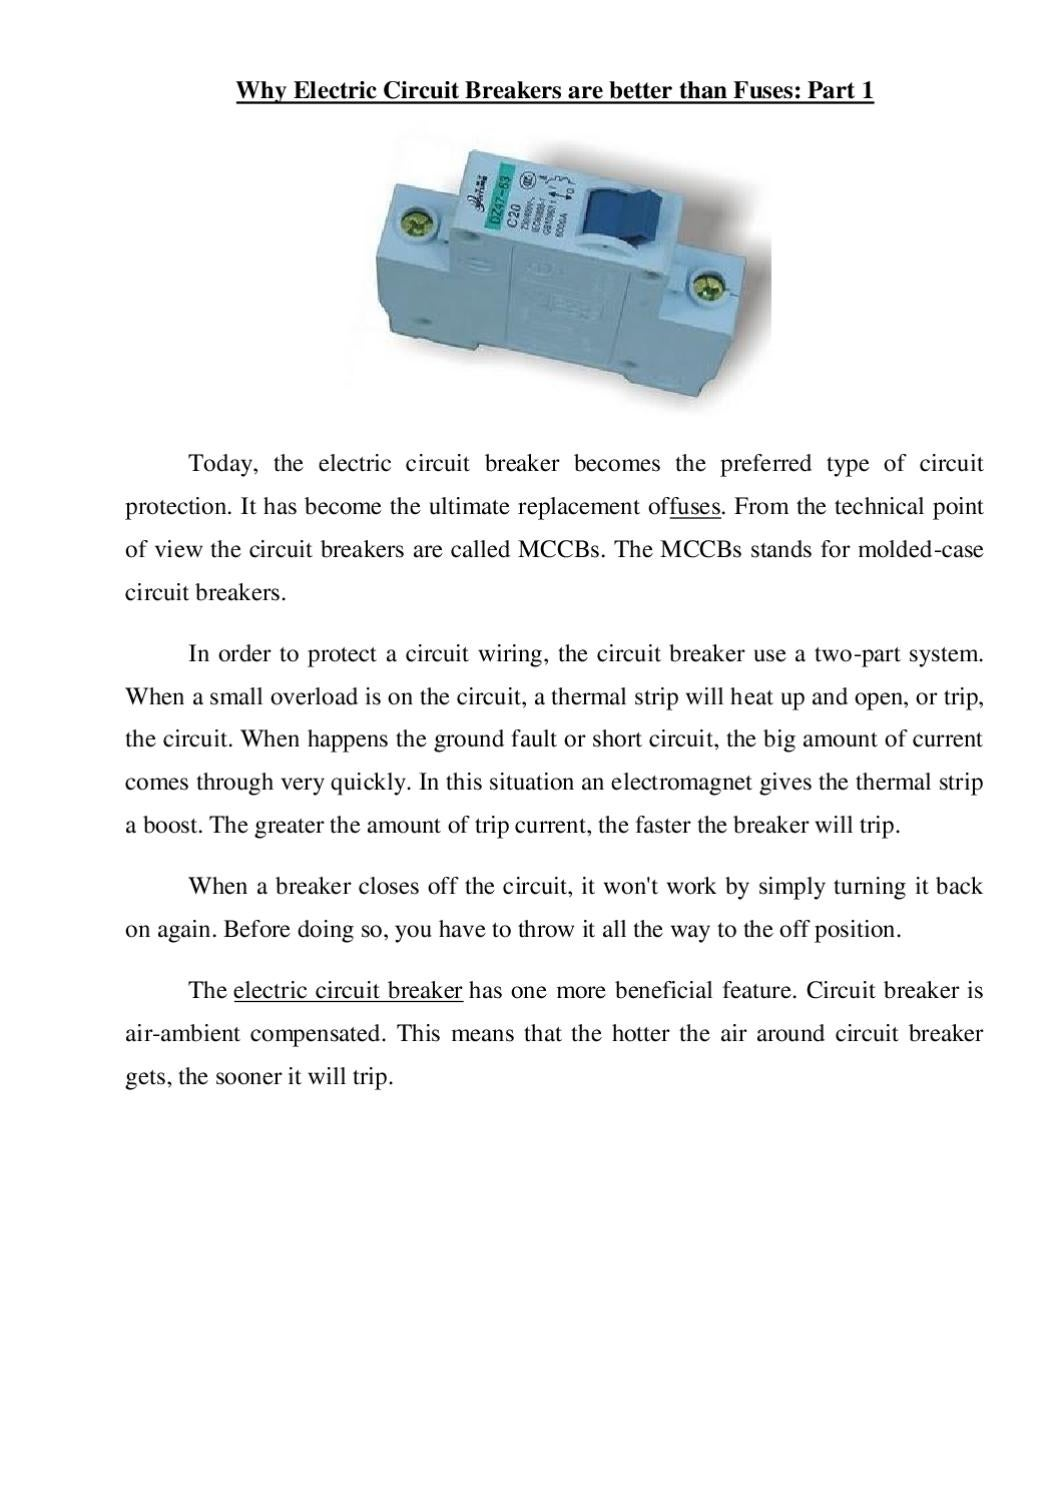 Why Electric Circuit Breakers Are Better Than Fuses Part 12 By How Does Breaker Work Oleg Powerfish Issuu